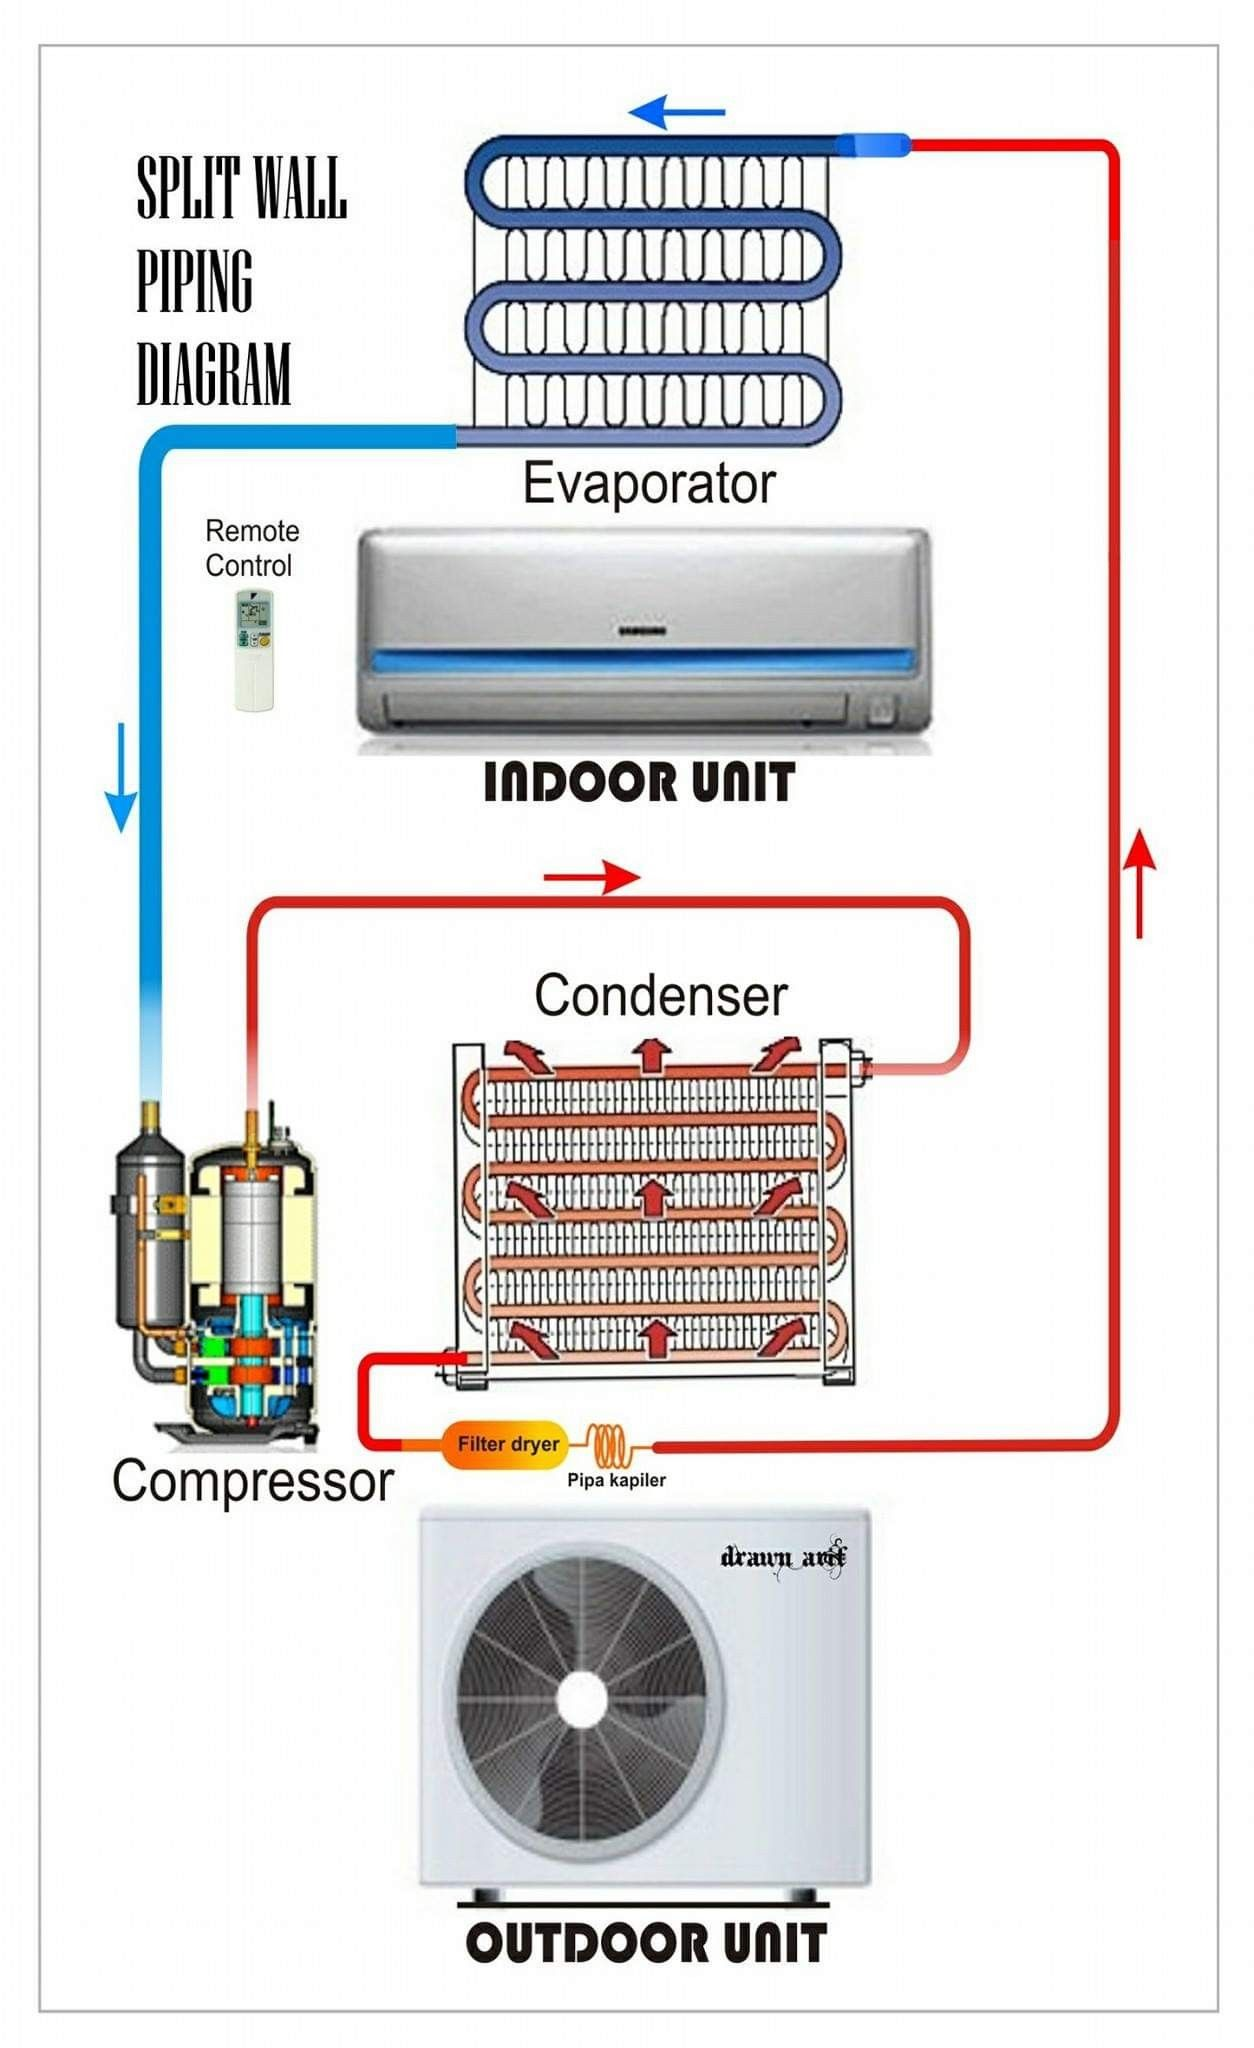 hight resolution of split wall piping diagram air conditioning system in 2019 split wall piping diagram